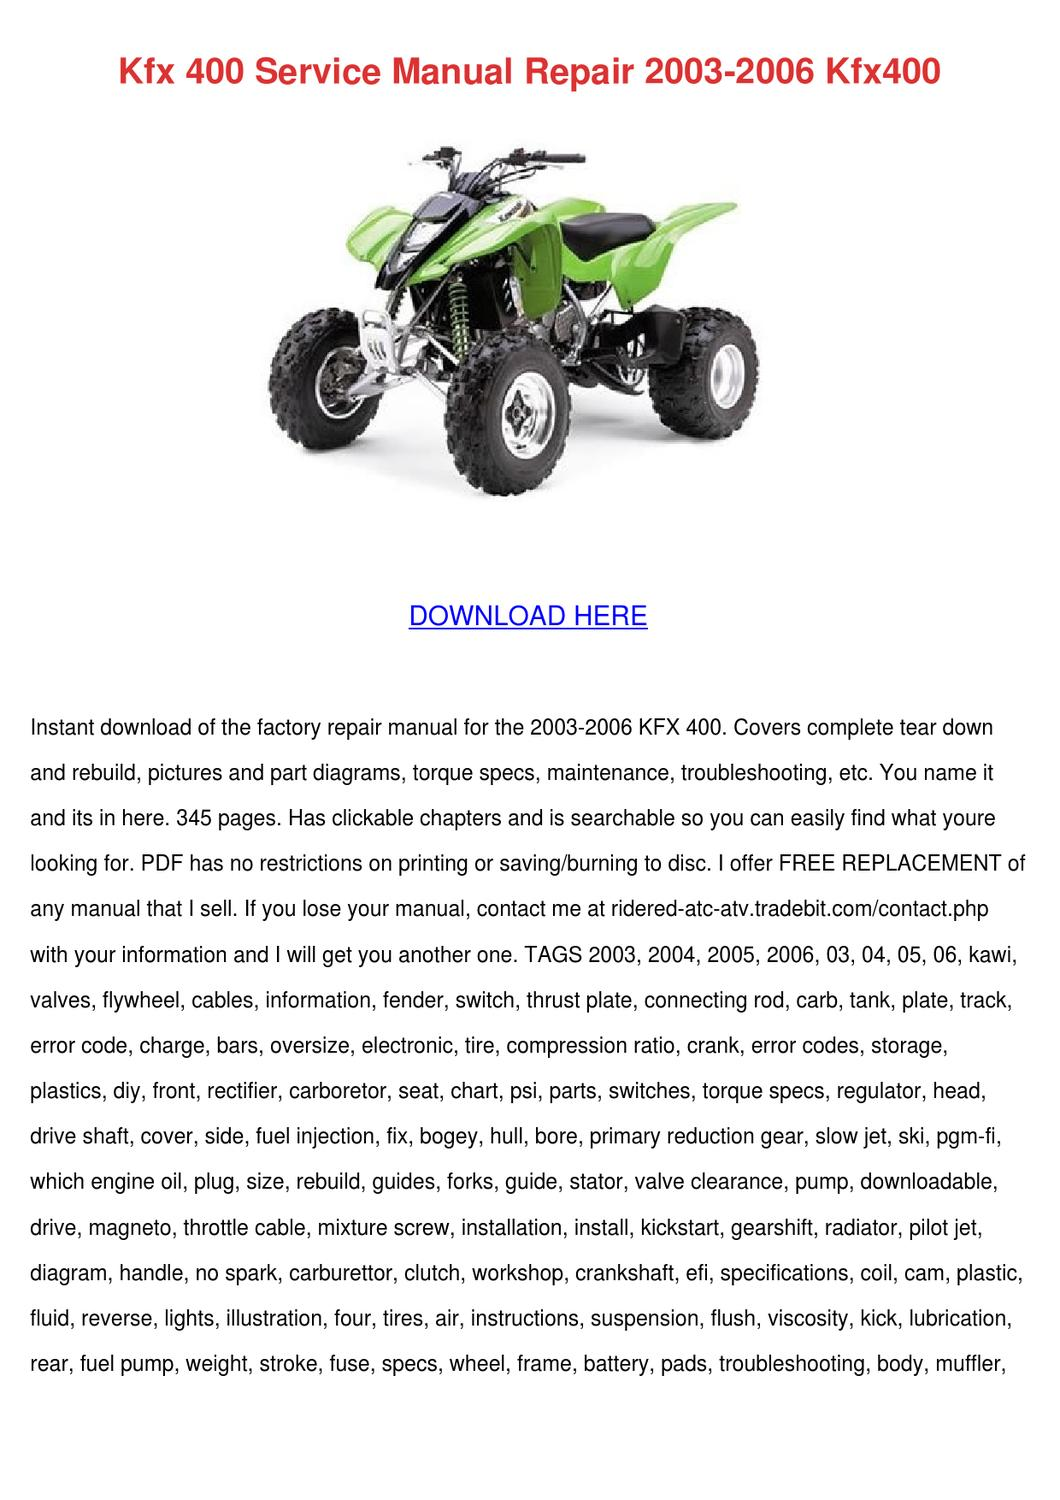 Kfx 400 Service Manual Repair 2003 2006 Kfx40 by Marylouise Calvillo - issuu